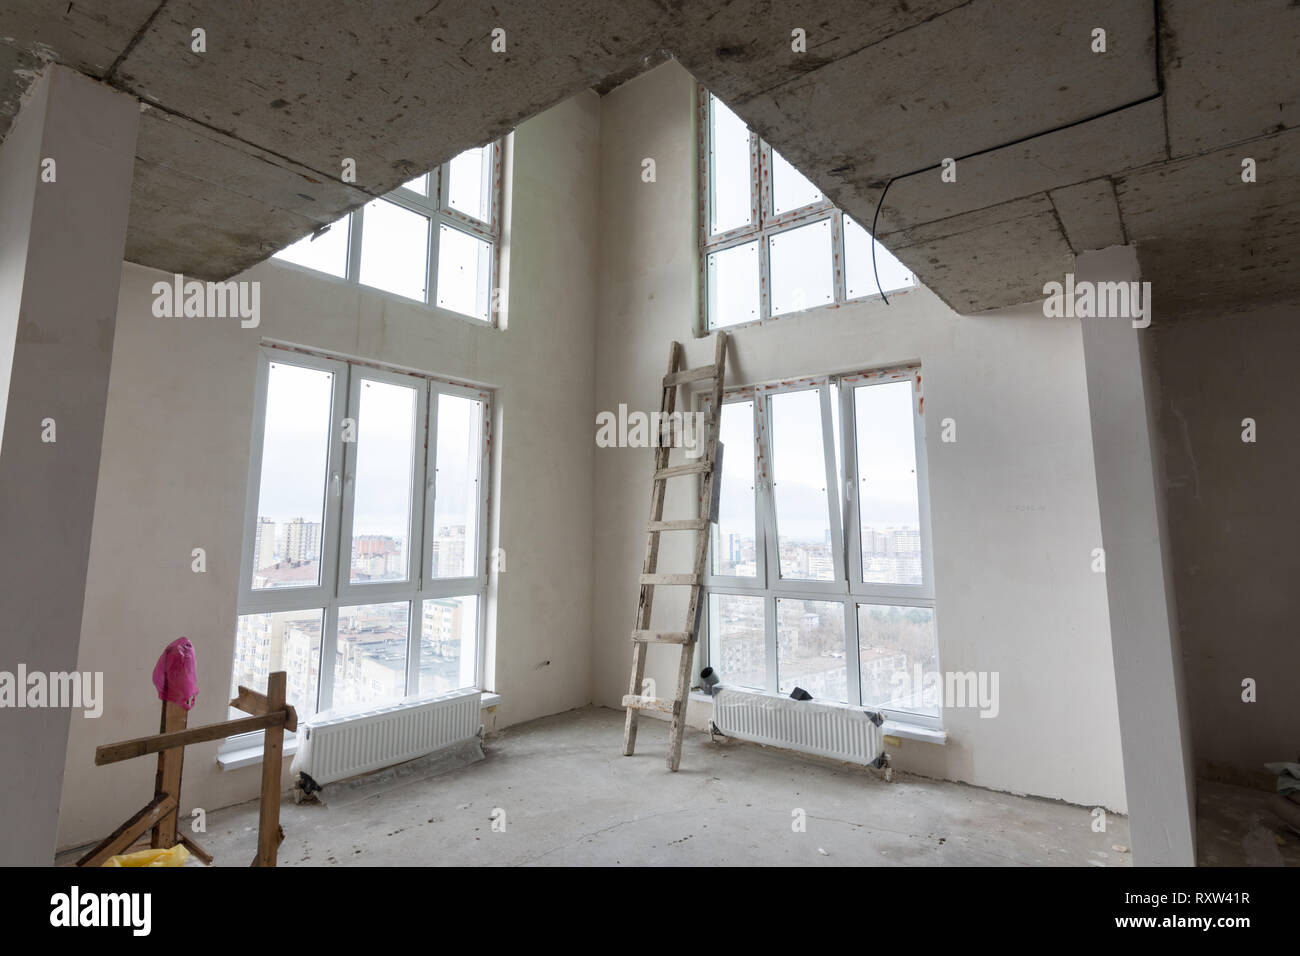 The interior of the first floor in a two-story apartment in